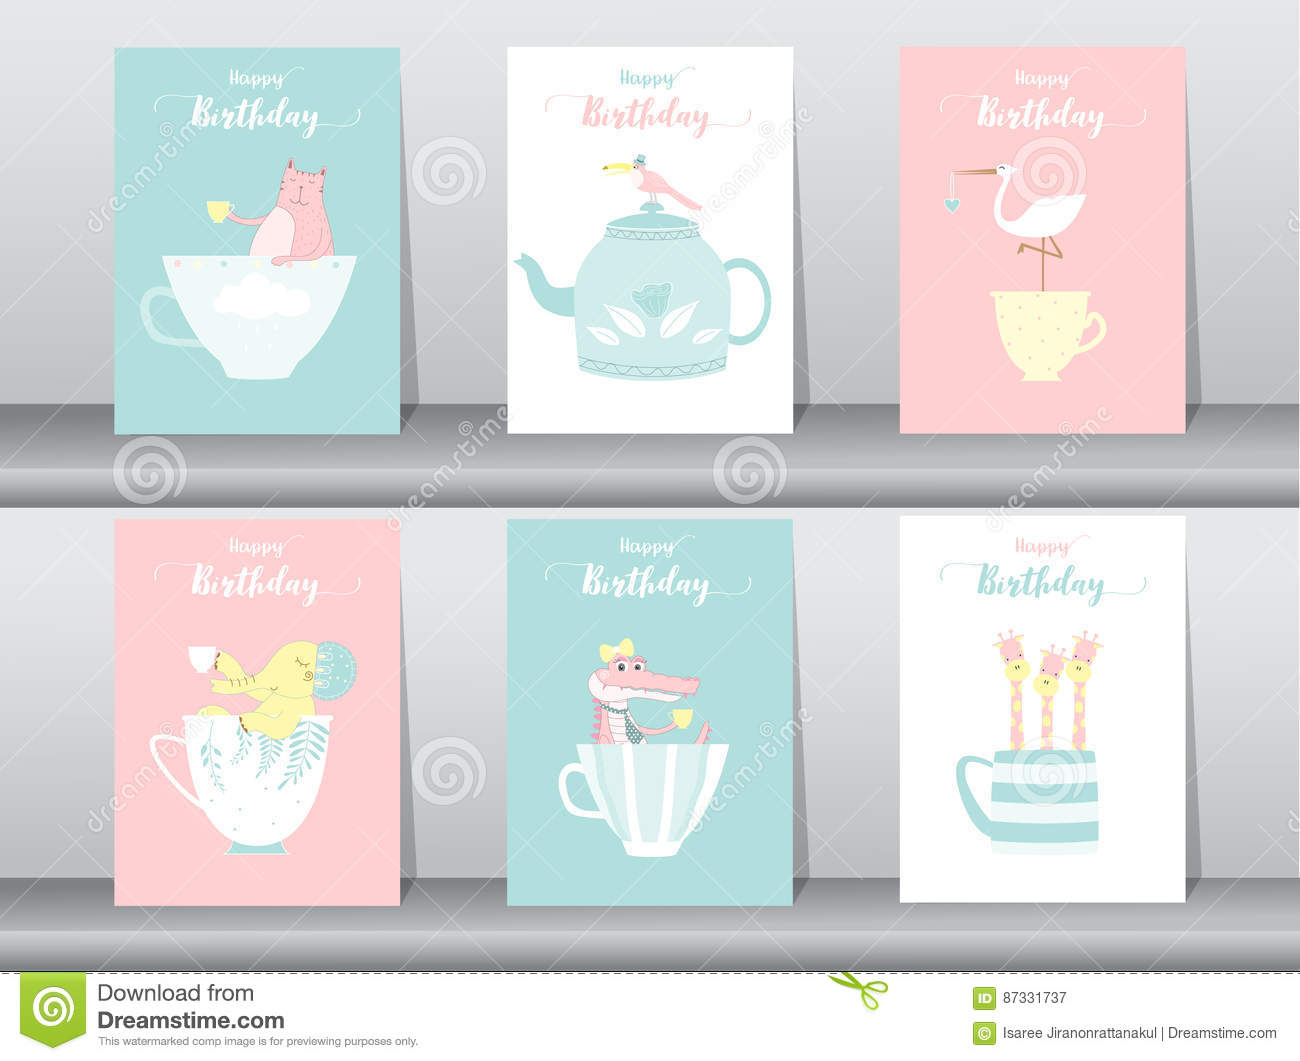 Set of birthday cards,poster,template,greeting cards,sweet,animals,Vector illustrations